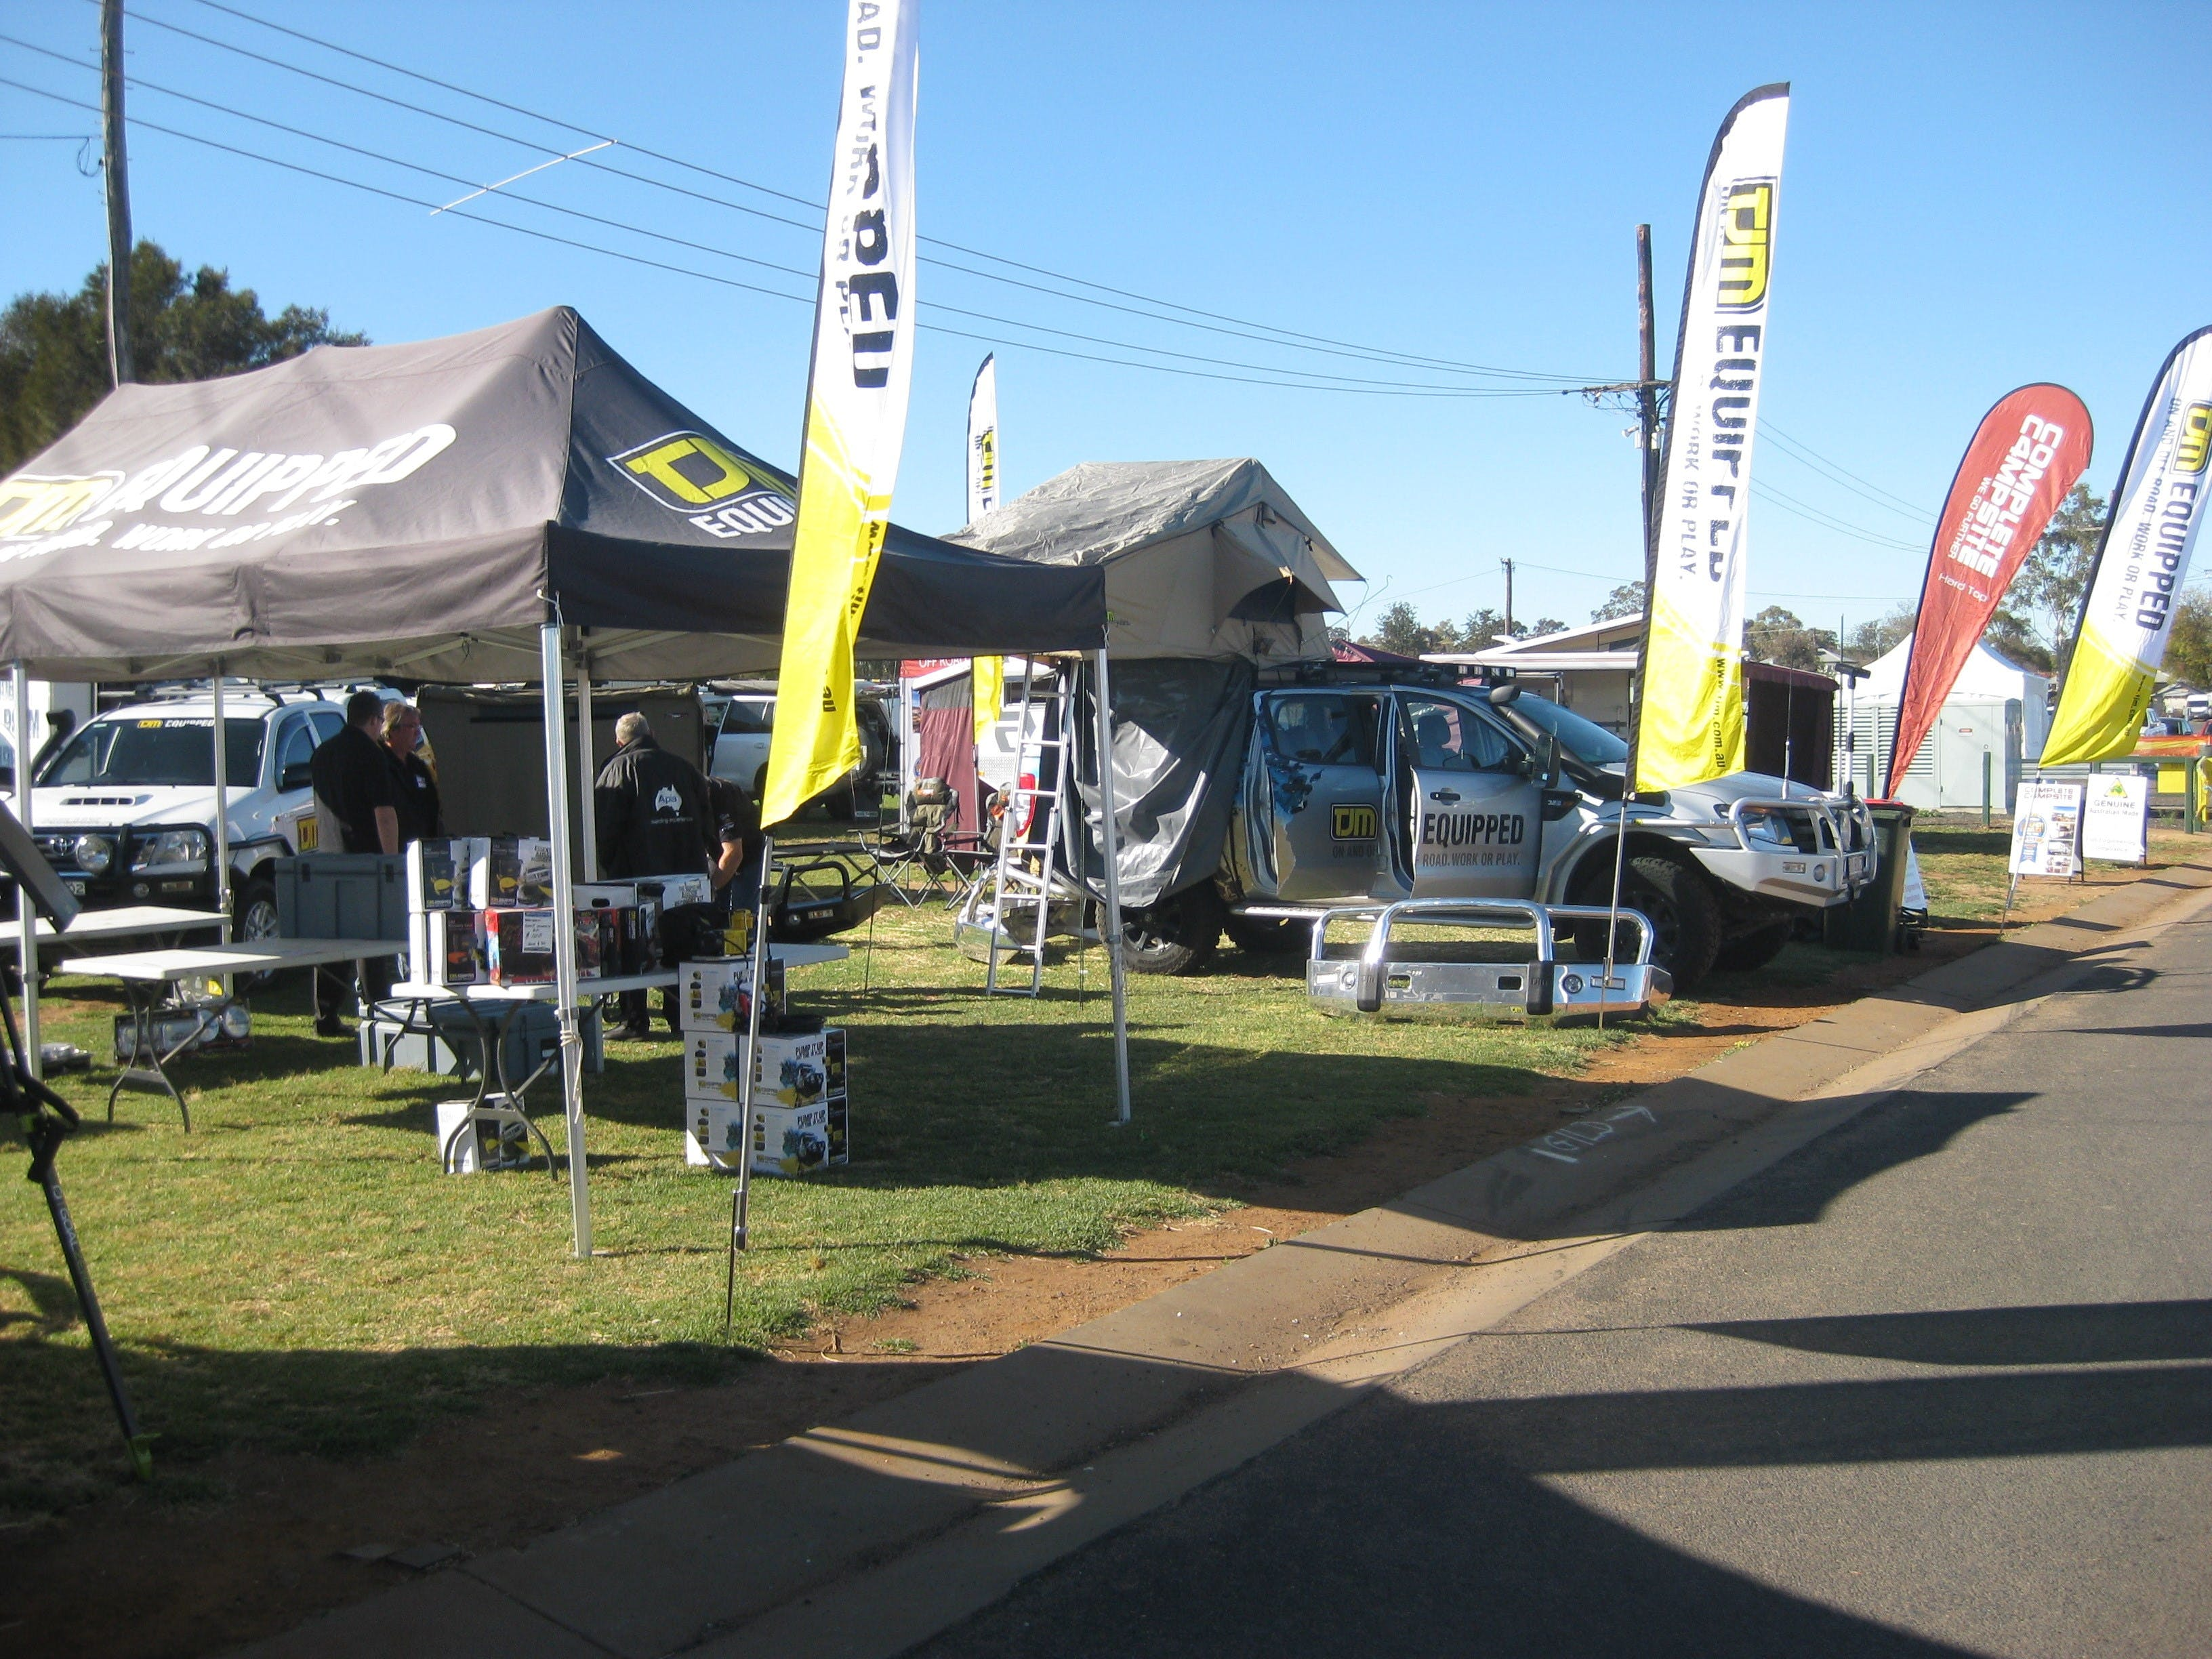 Orana Caravan Camping 4WD Fish and Boat Show - WA Accommodation